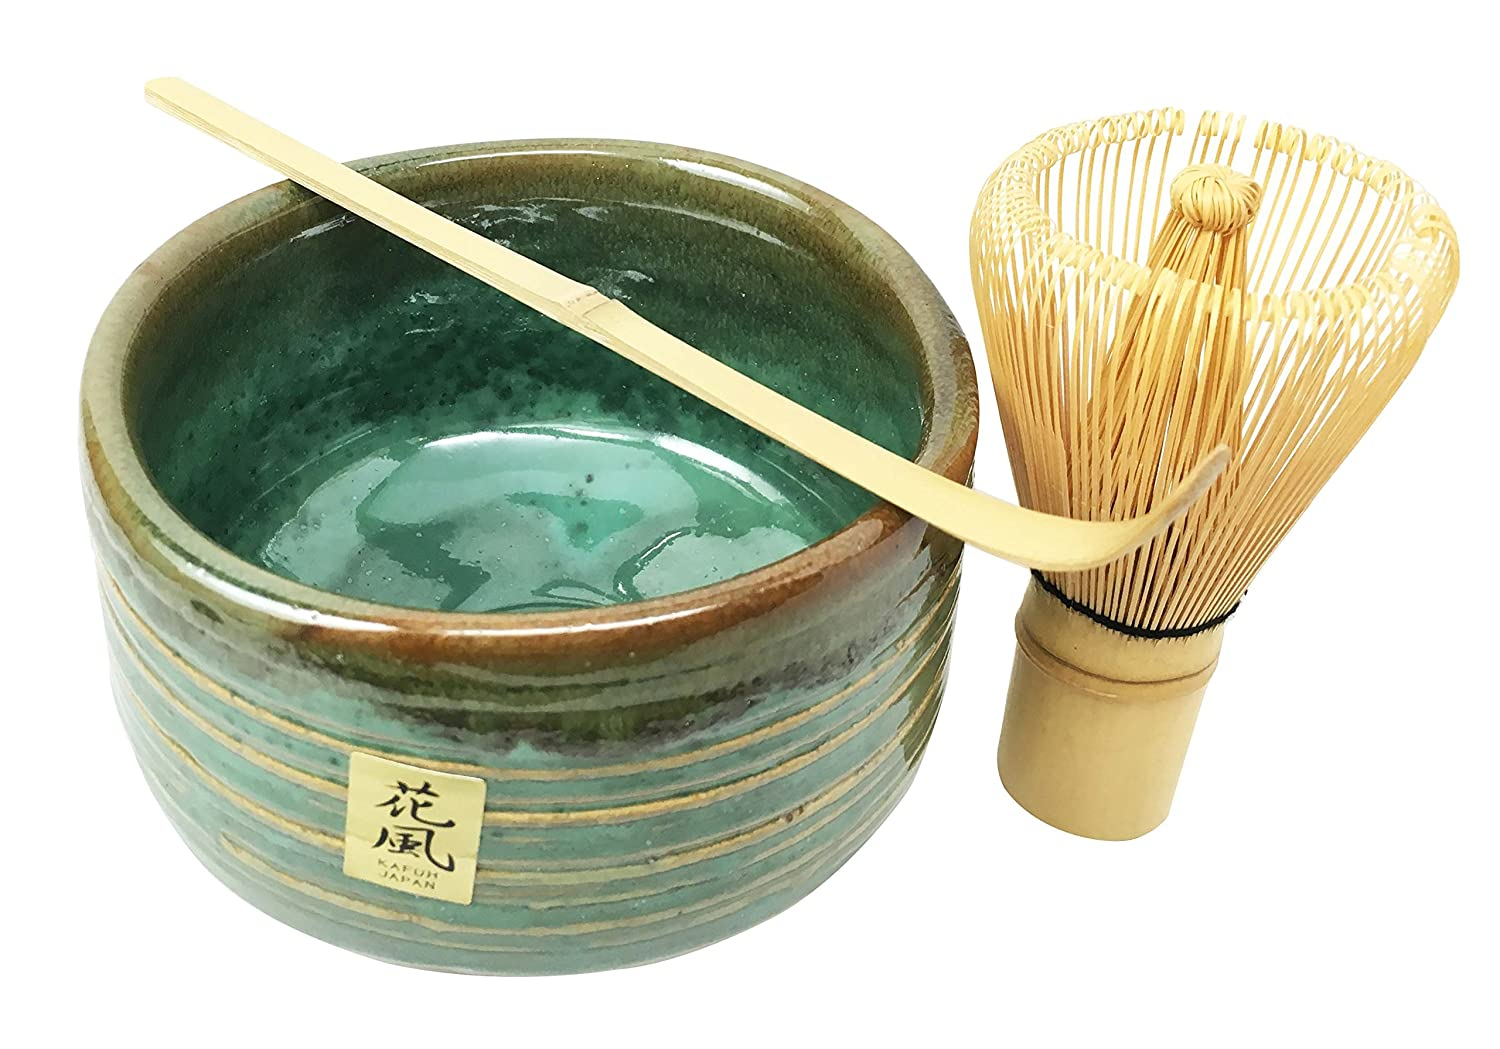 Japanese Traditional Tea Ceremony Matcha Green Tea Set With Bowl, Wooden Whisk And Scoop Aesthetic and Quality Put Together Into A Beautiful Gift Set Box For Weddings Gifts Home Decorative Gifts & Decors